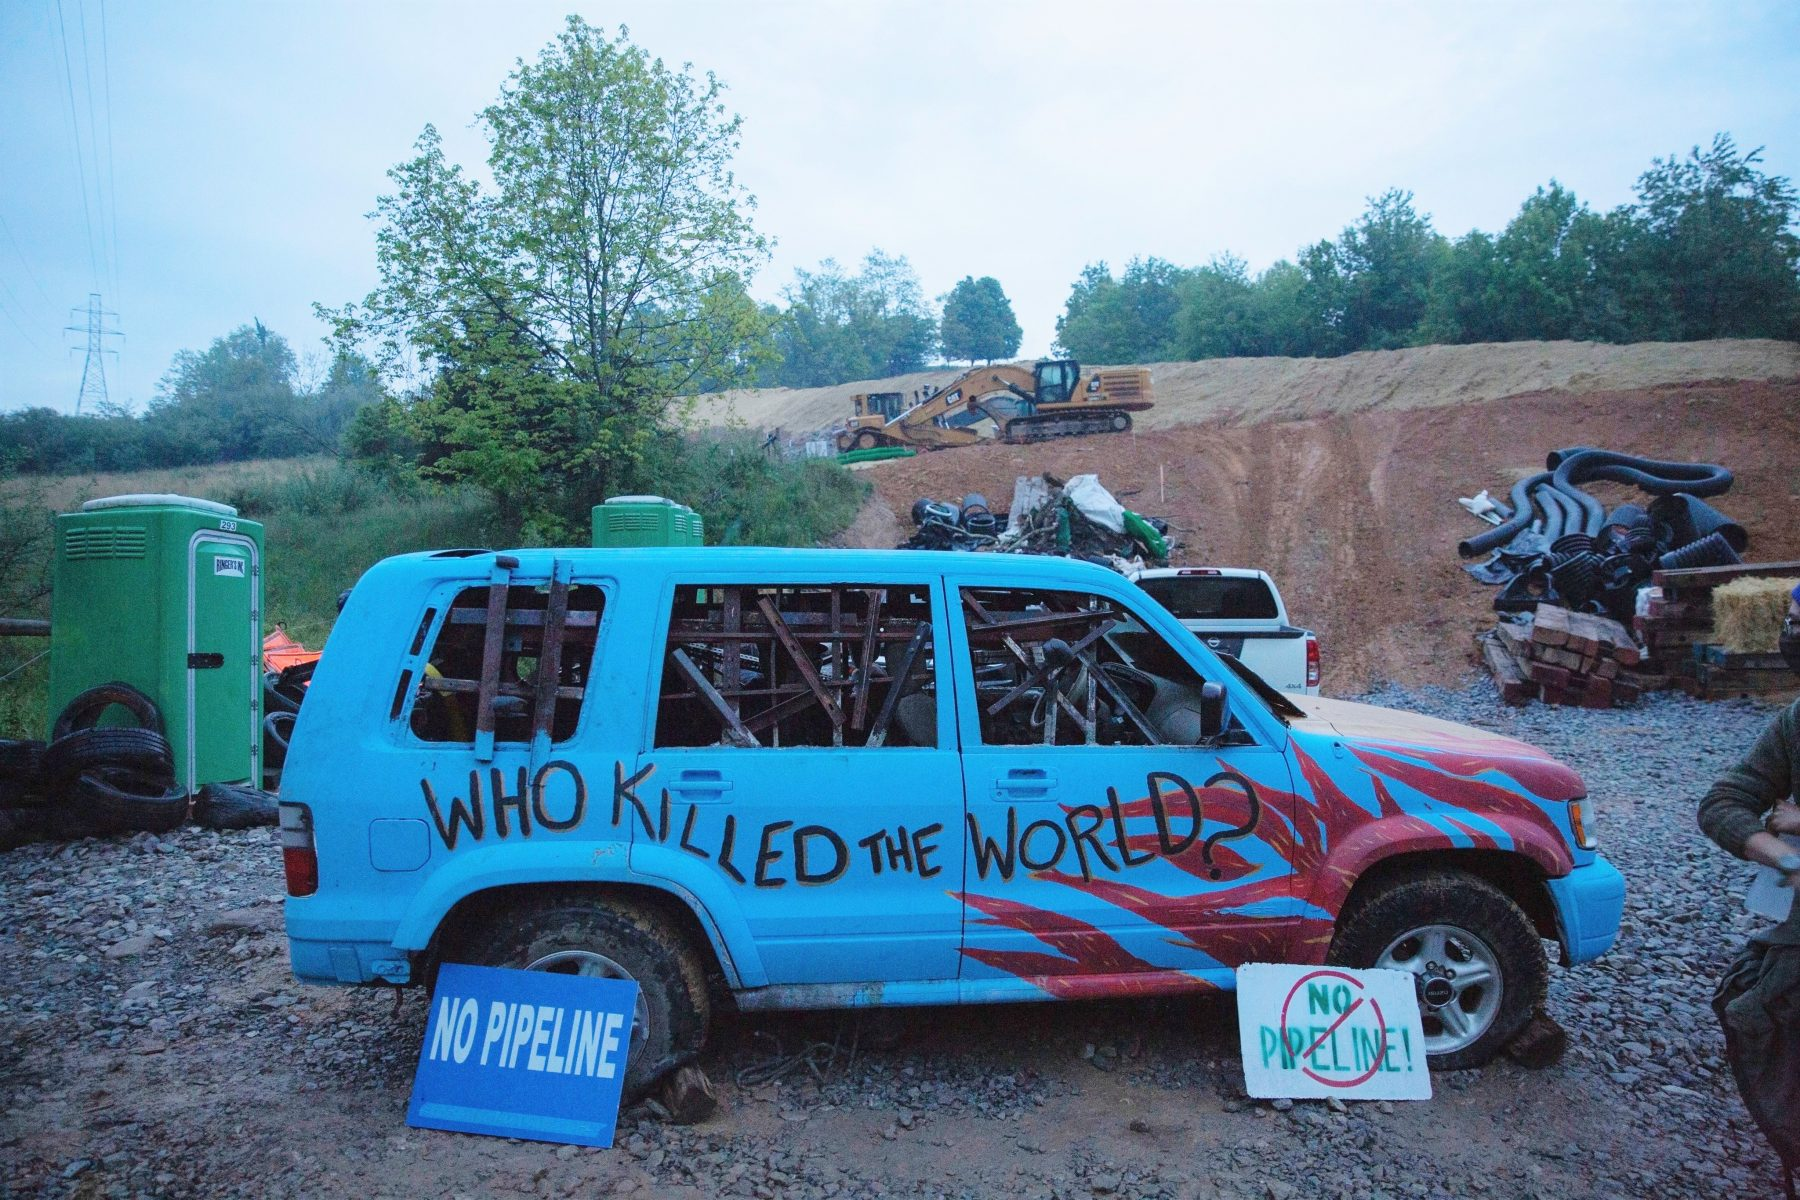 Mountain Valley Pipeline protester blockades access to work site